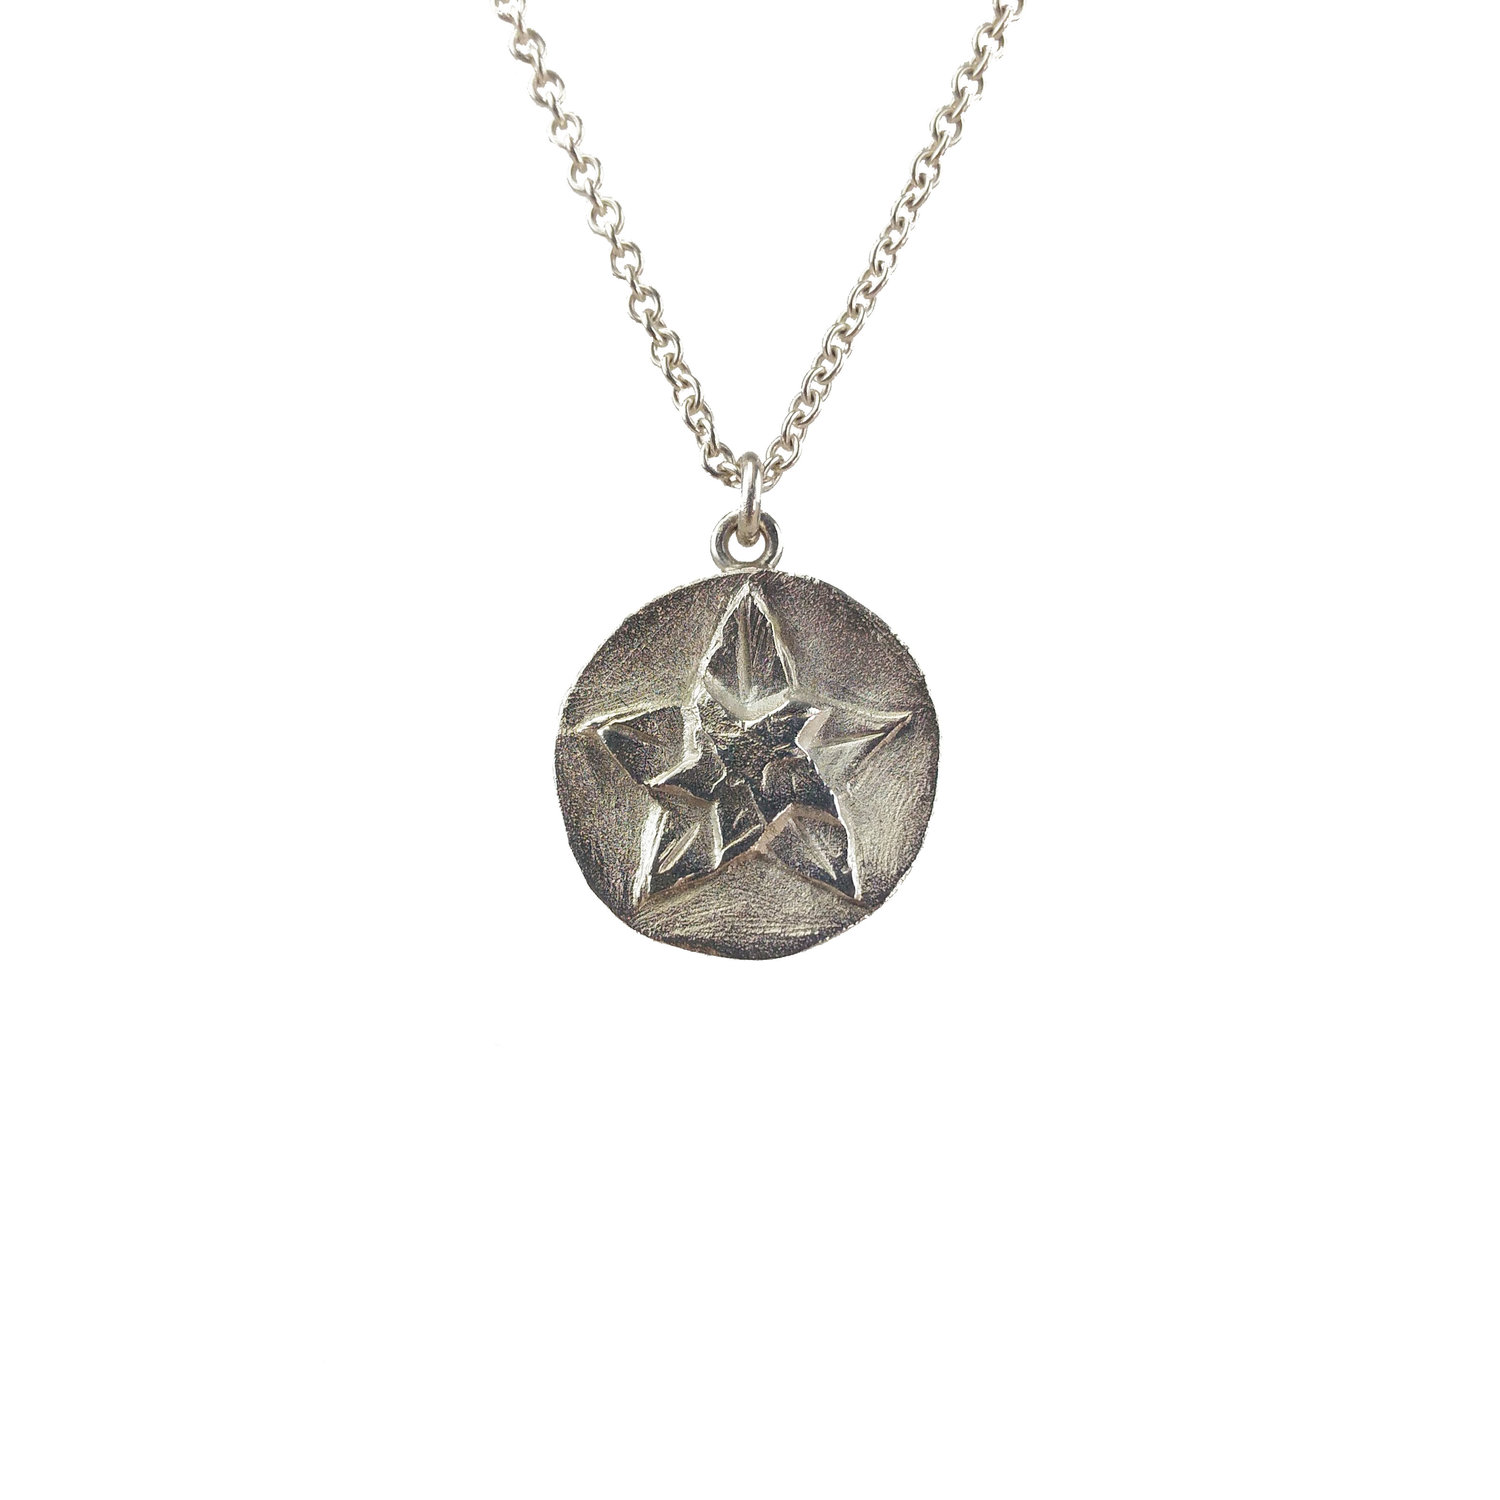 Sterling silver star pendant grinstein jewelry design sterling silver star pendant mozeypictures Image collections